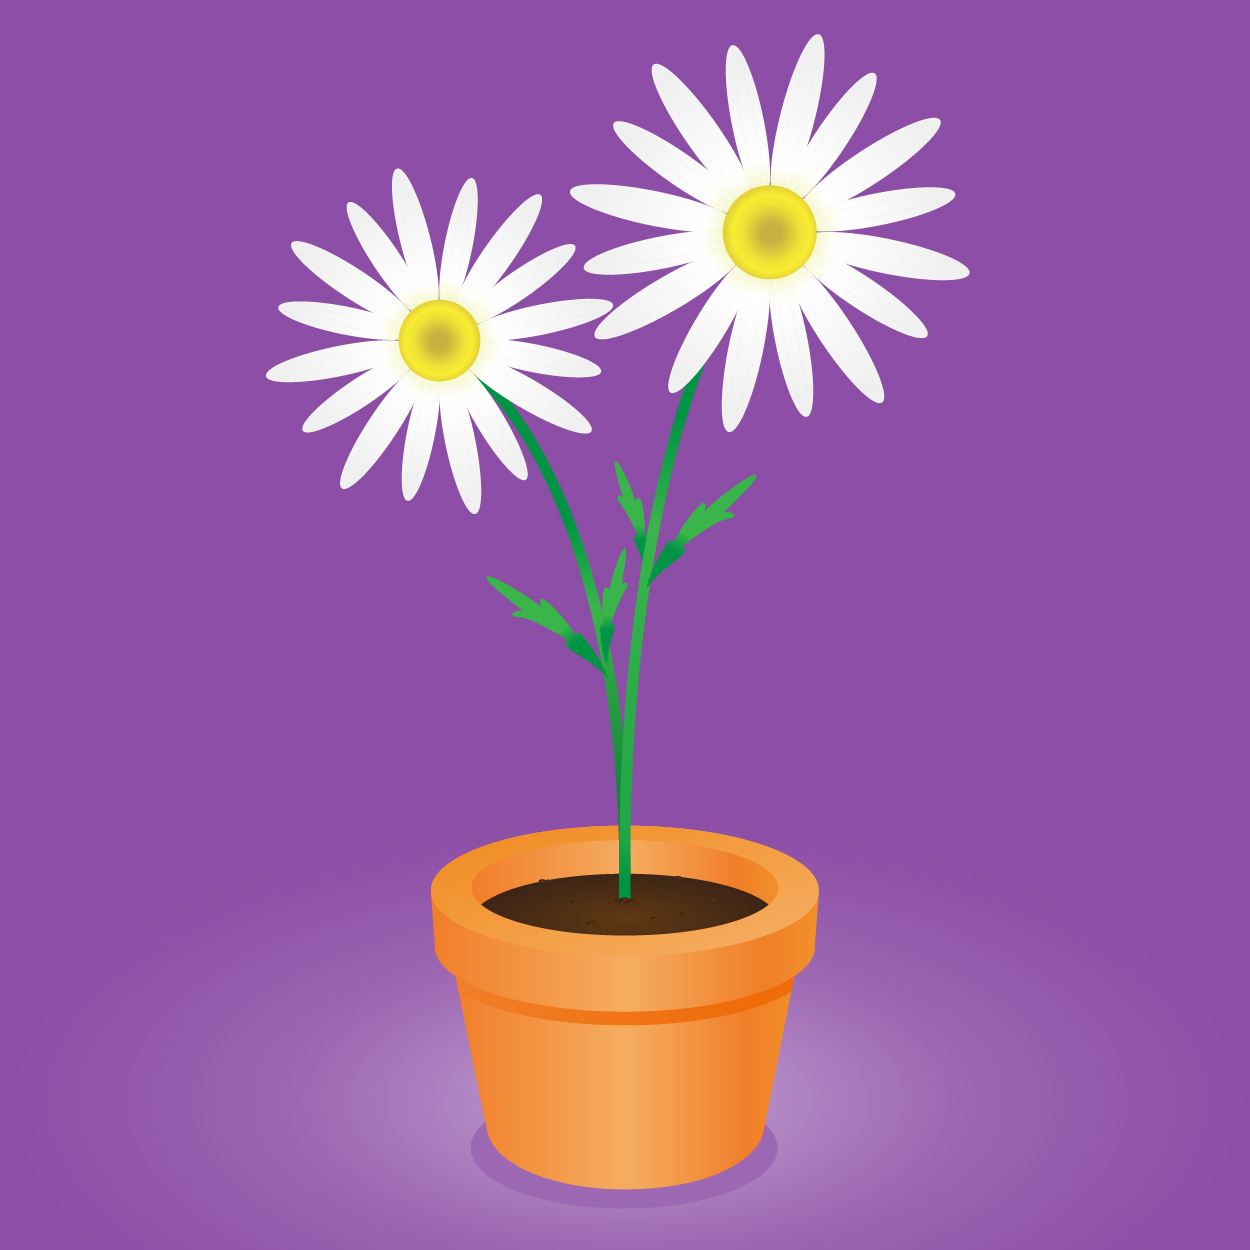 1250x1250 Daisy Flower Pot Vector Illustration Of An Orange Clay Flower